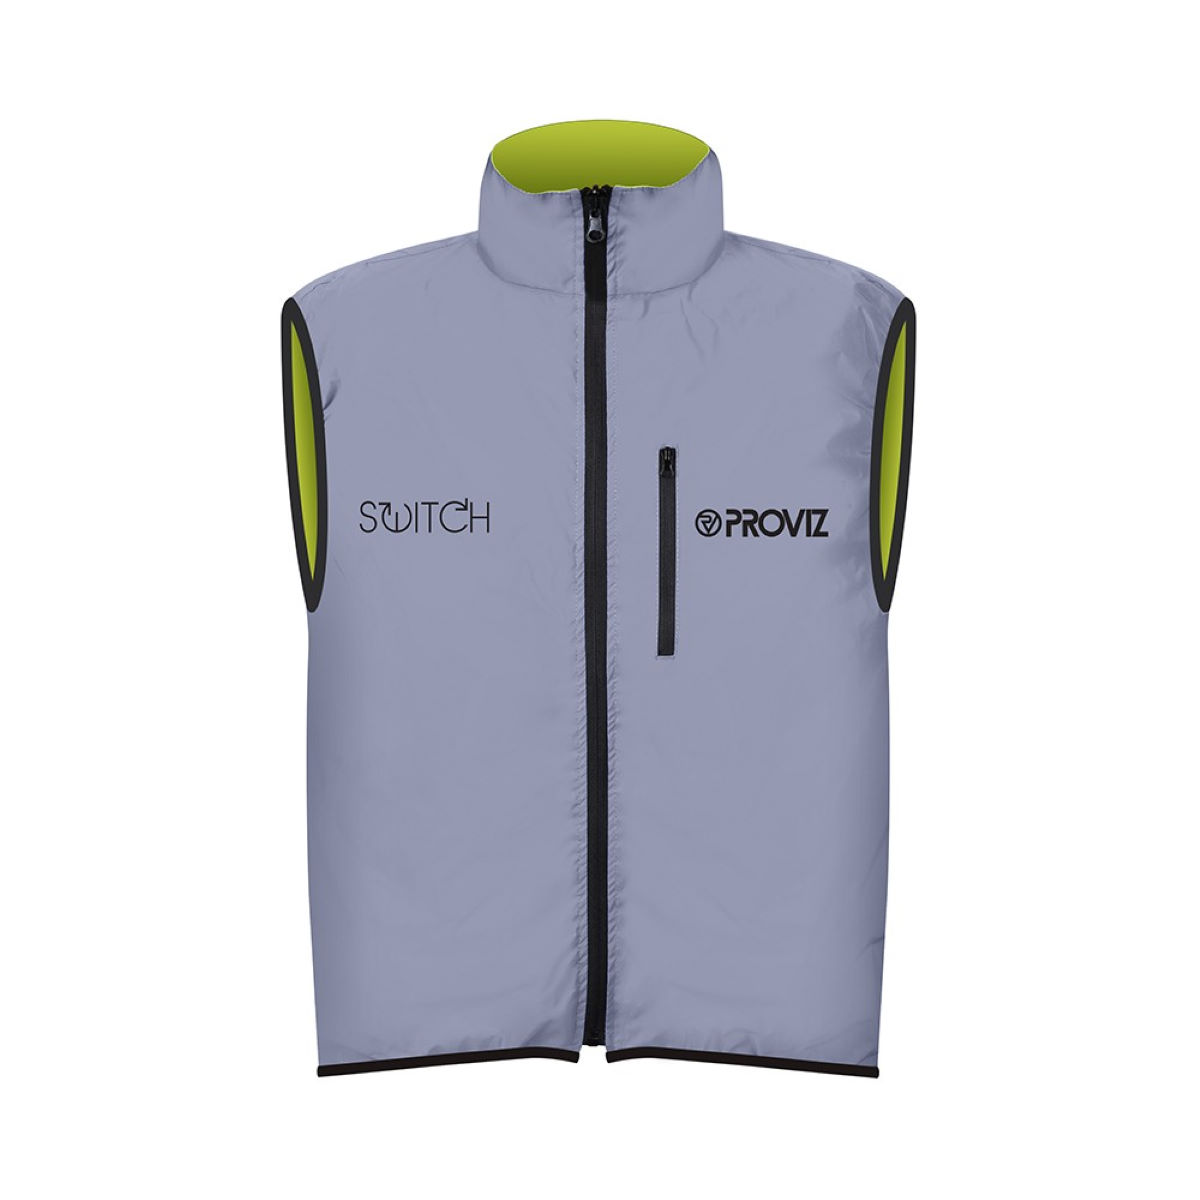 Gilet Proviz Switch (sans manches) - XX Large Reflective/Yellow